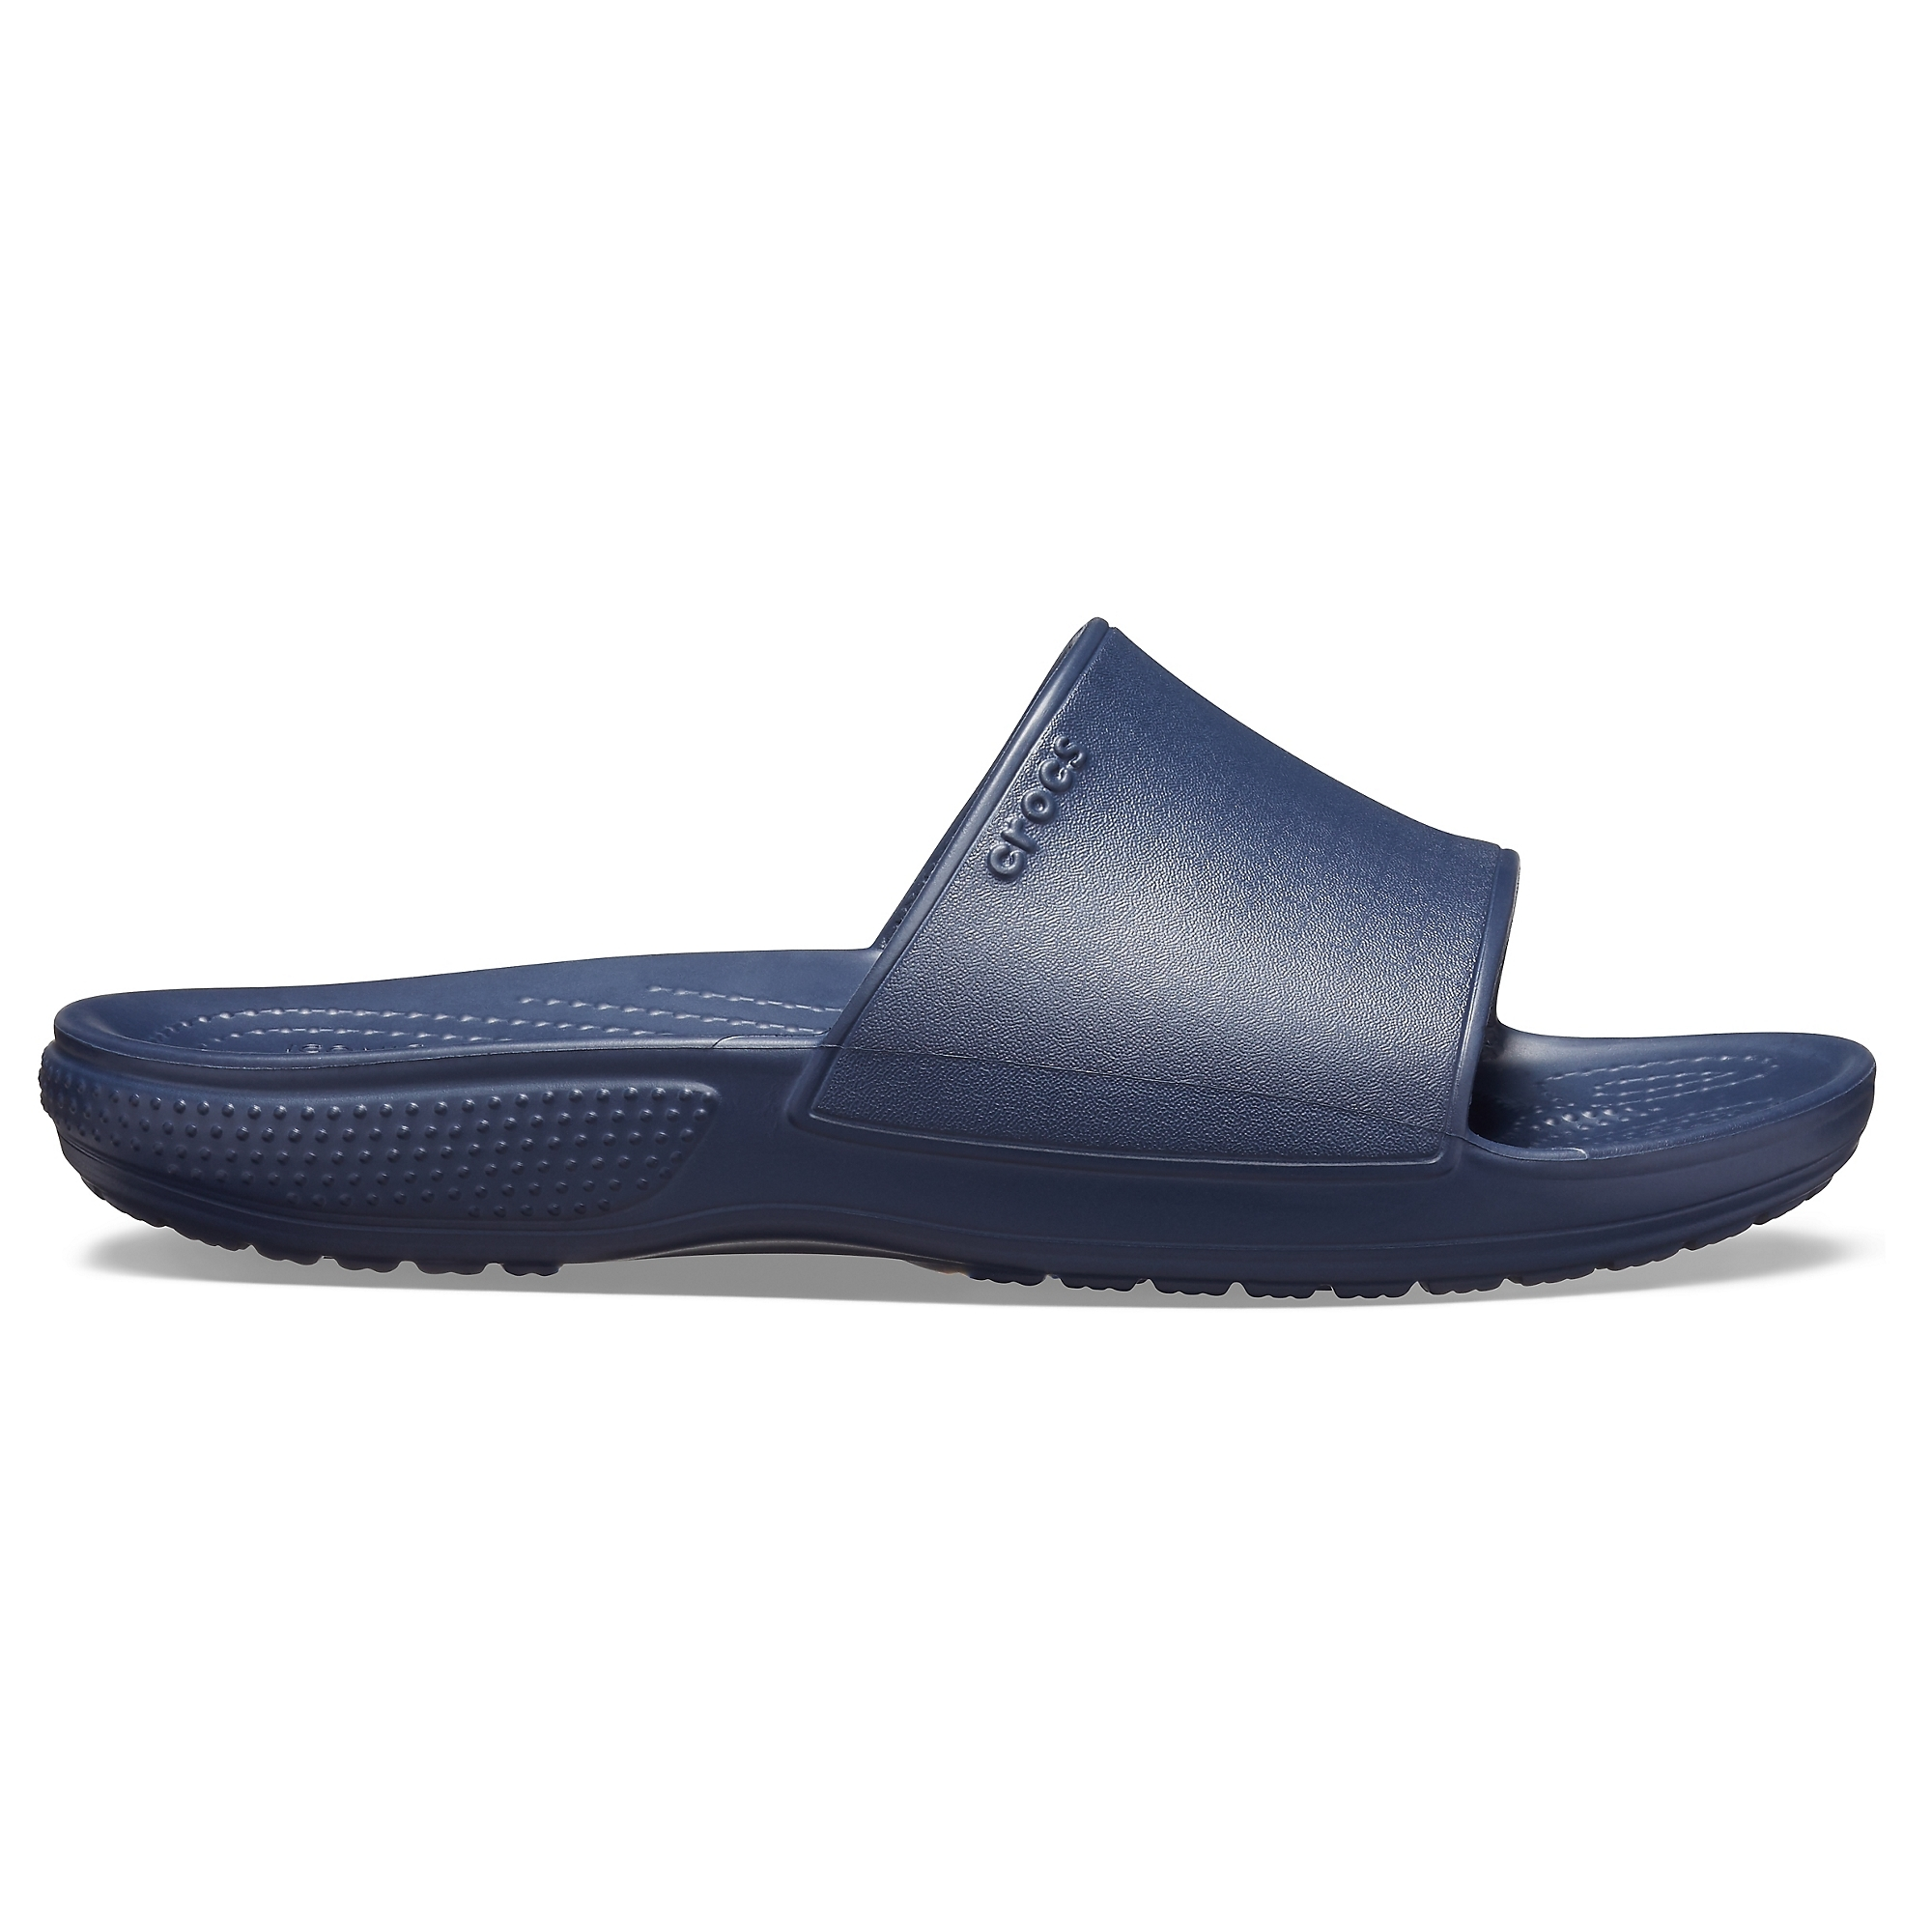 Slide Crocs Sandals Ii Classic Navy Mens 205732 RAL354j